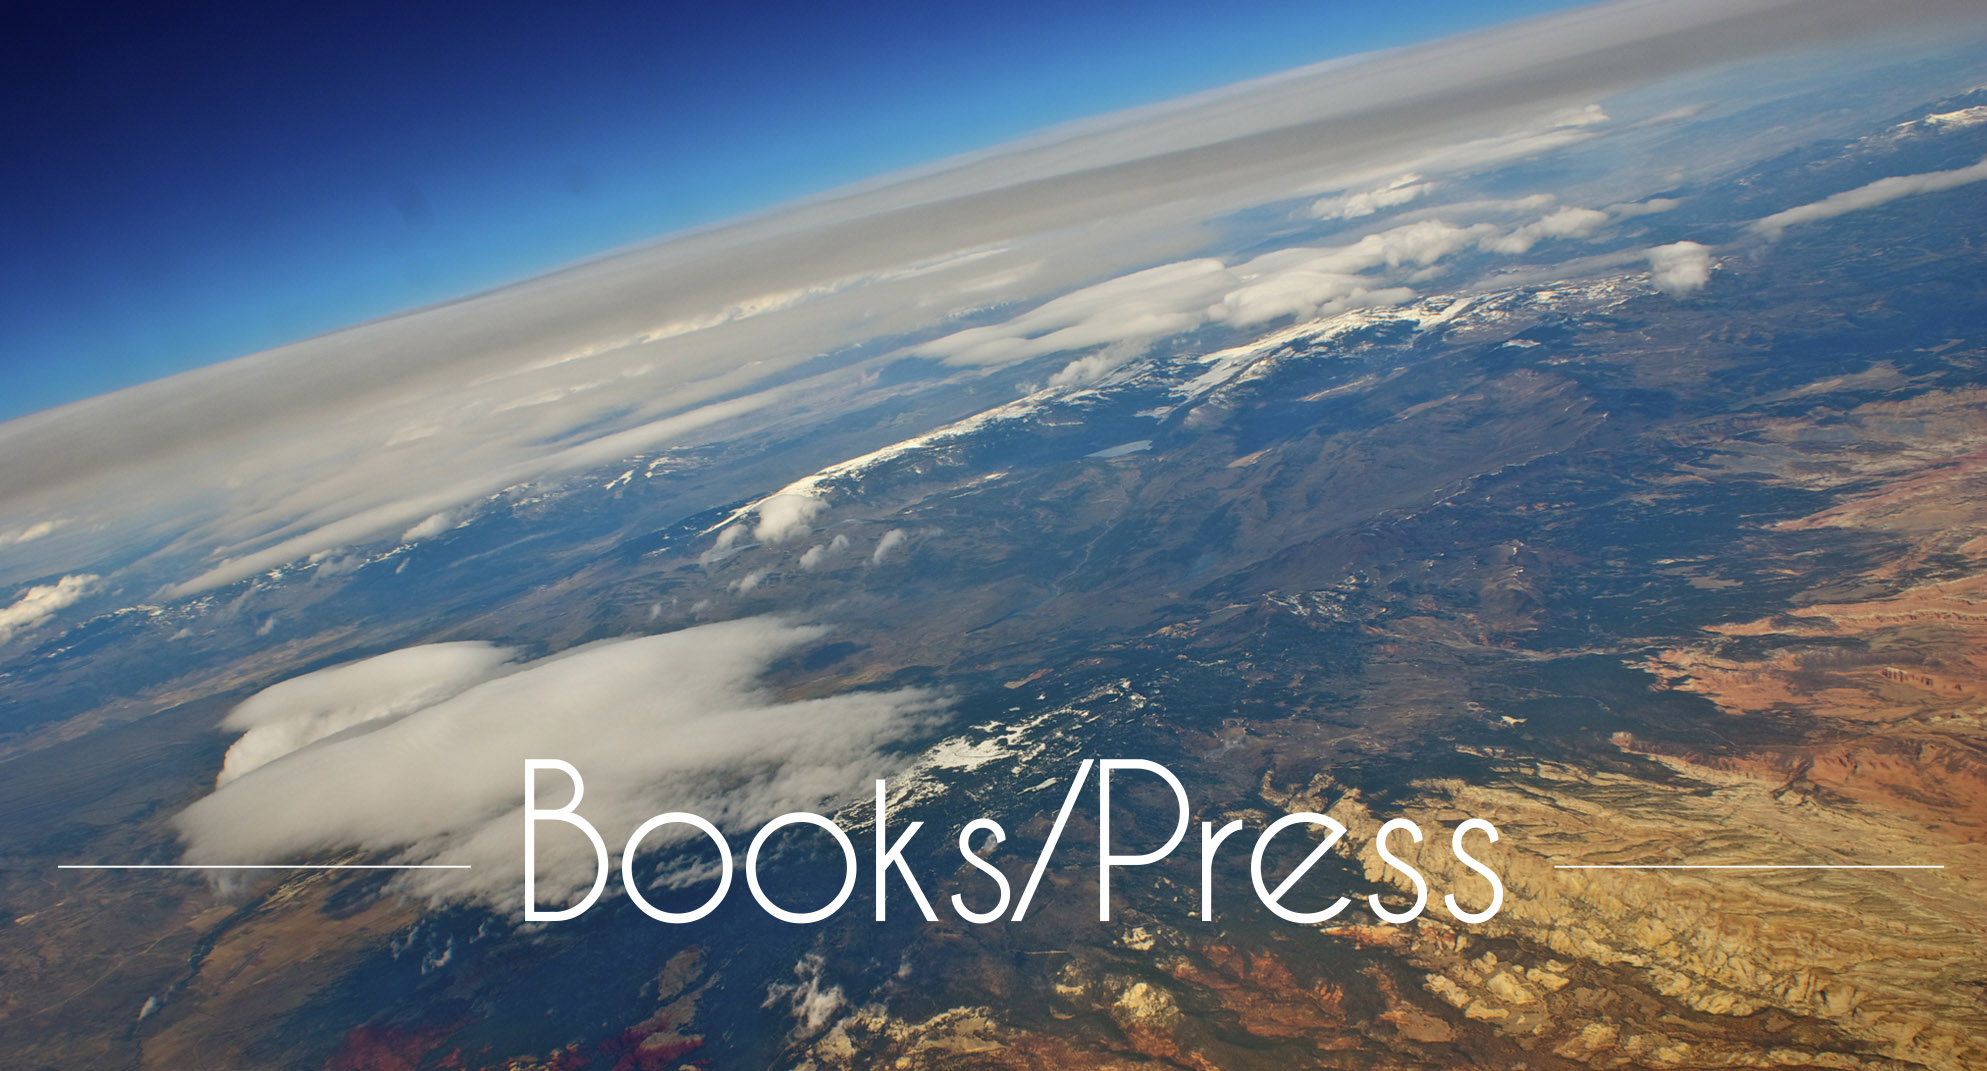 Books/Press